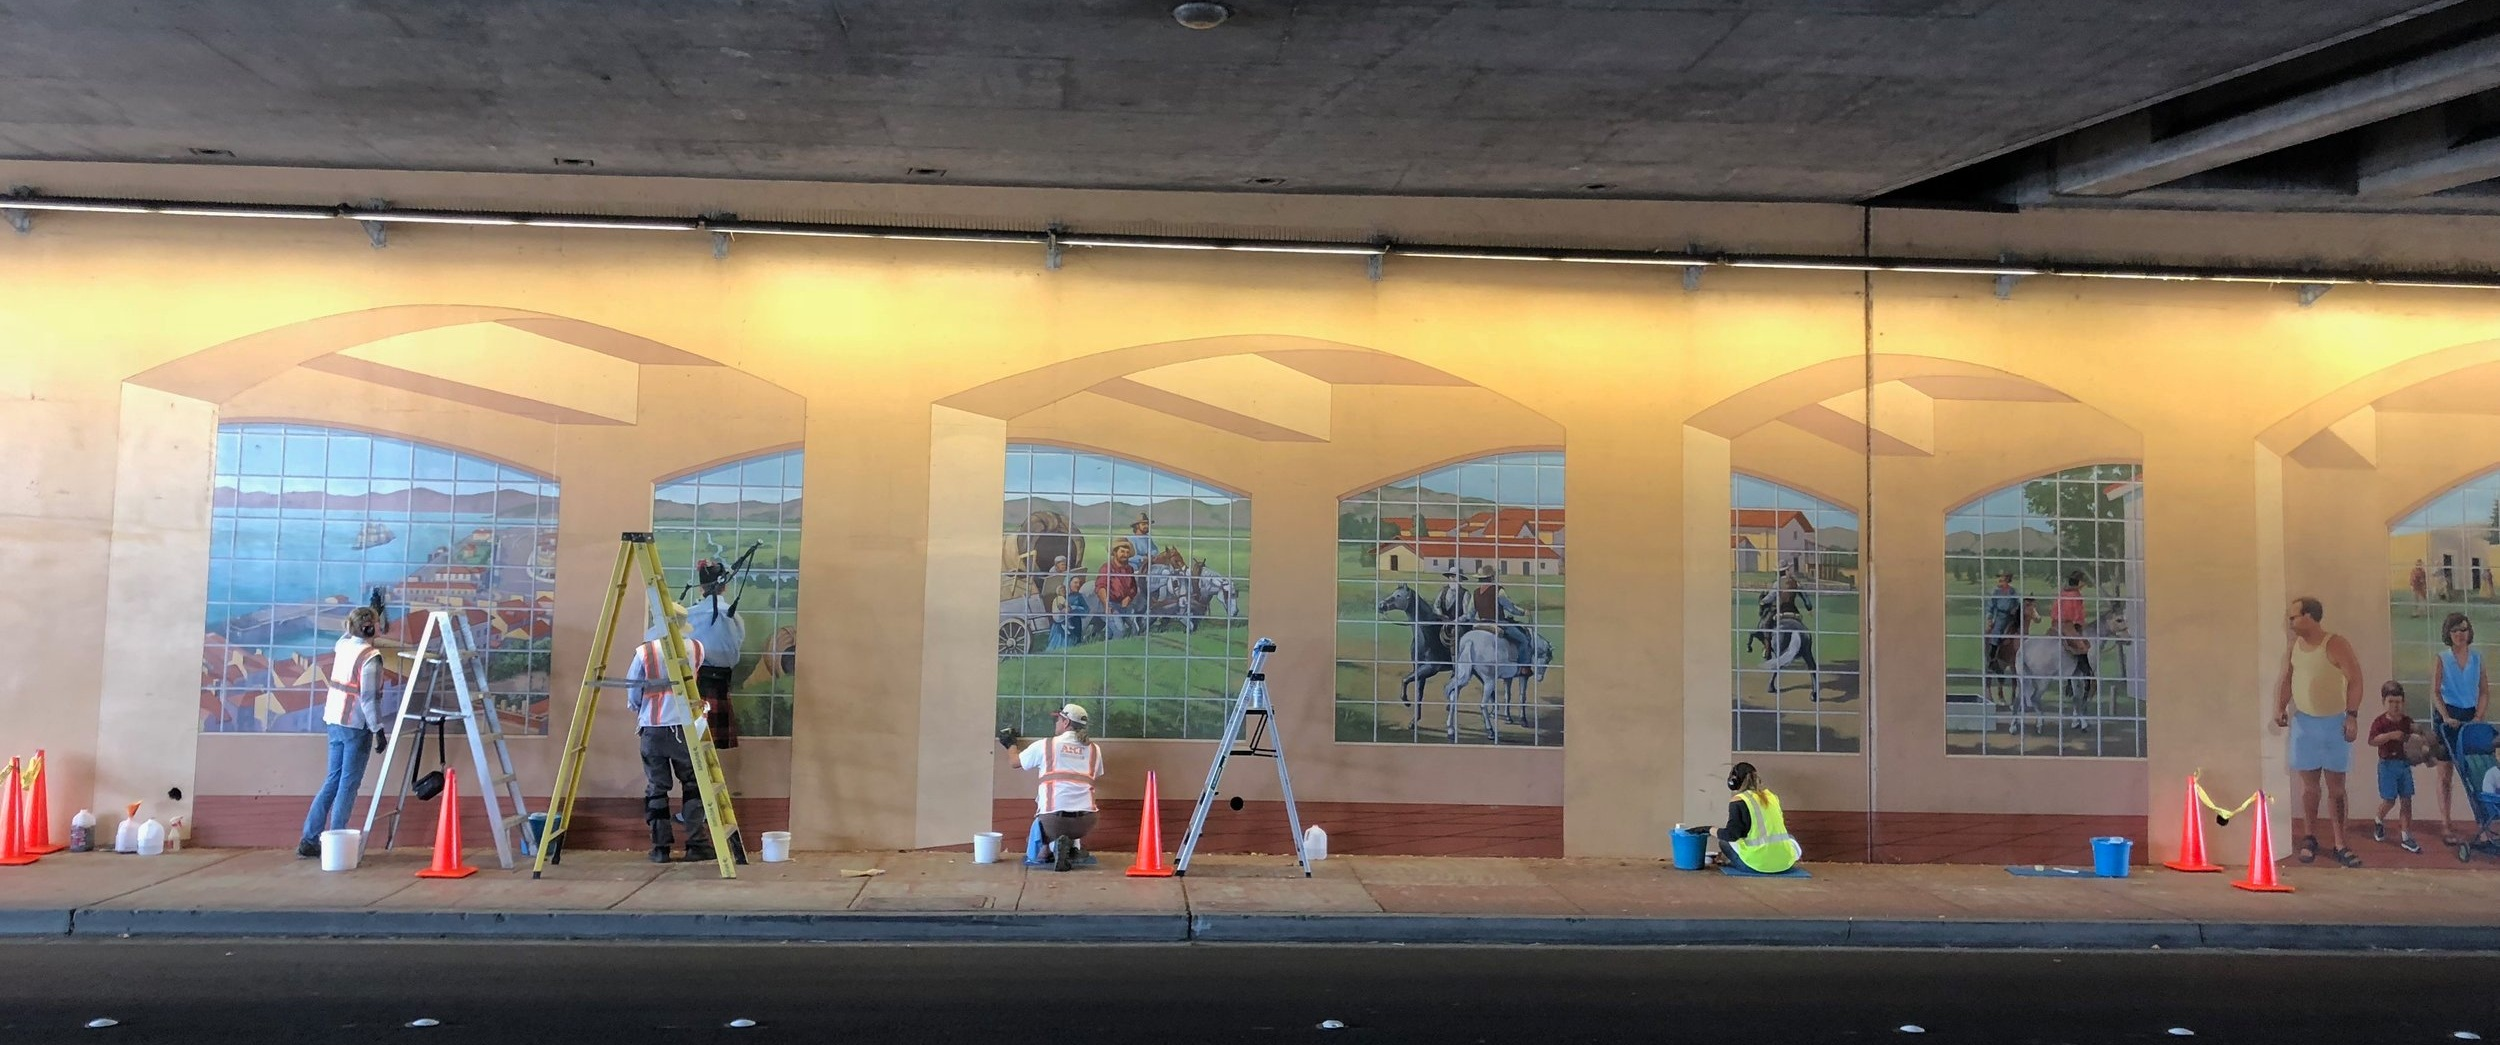 City Of Dublin - Historic Crossroad Mural - This shows our team repairing one of four murals on the walls of an underpass. A very large complex job that required a lot of coordination with the several stakeholders.